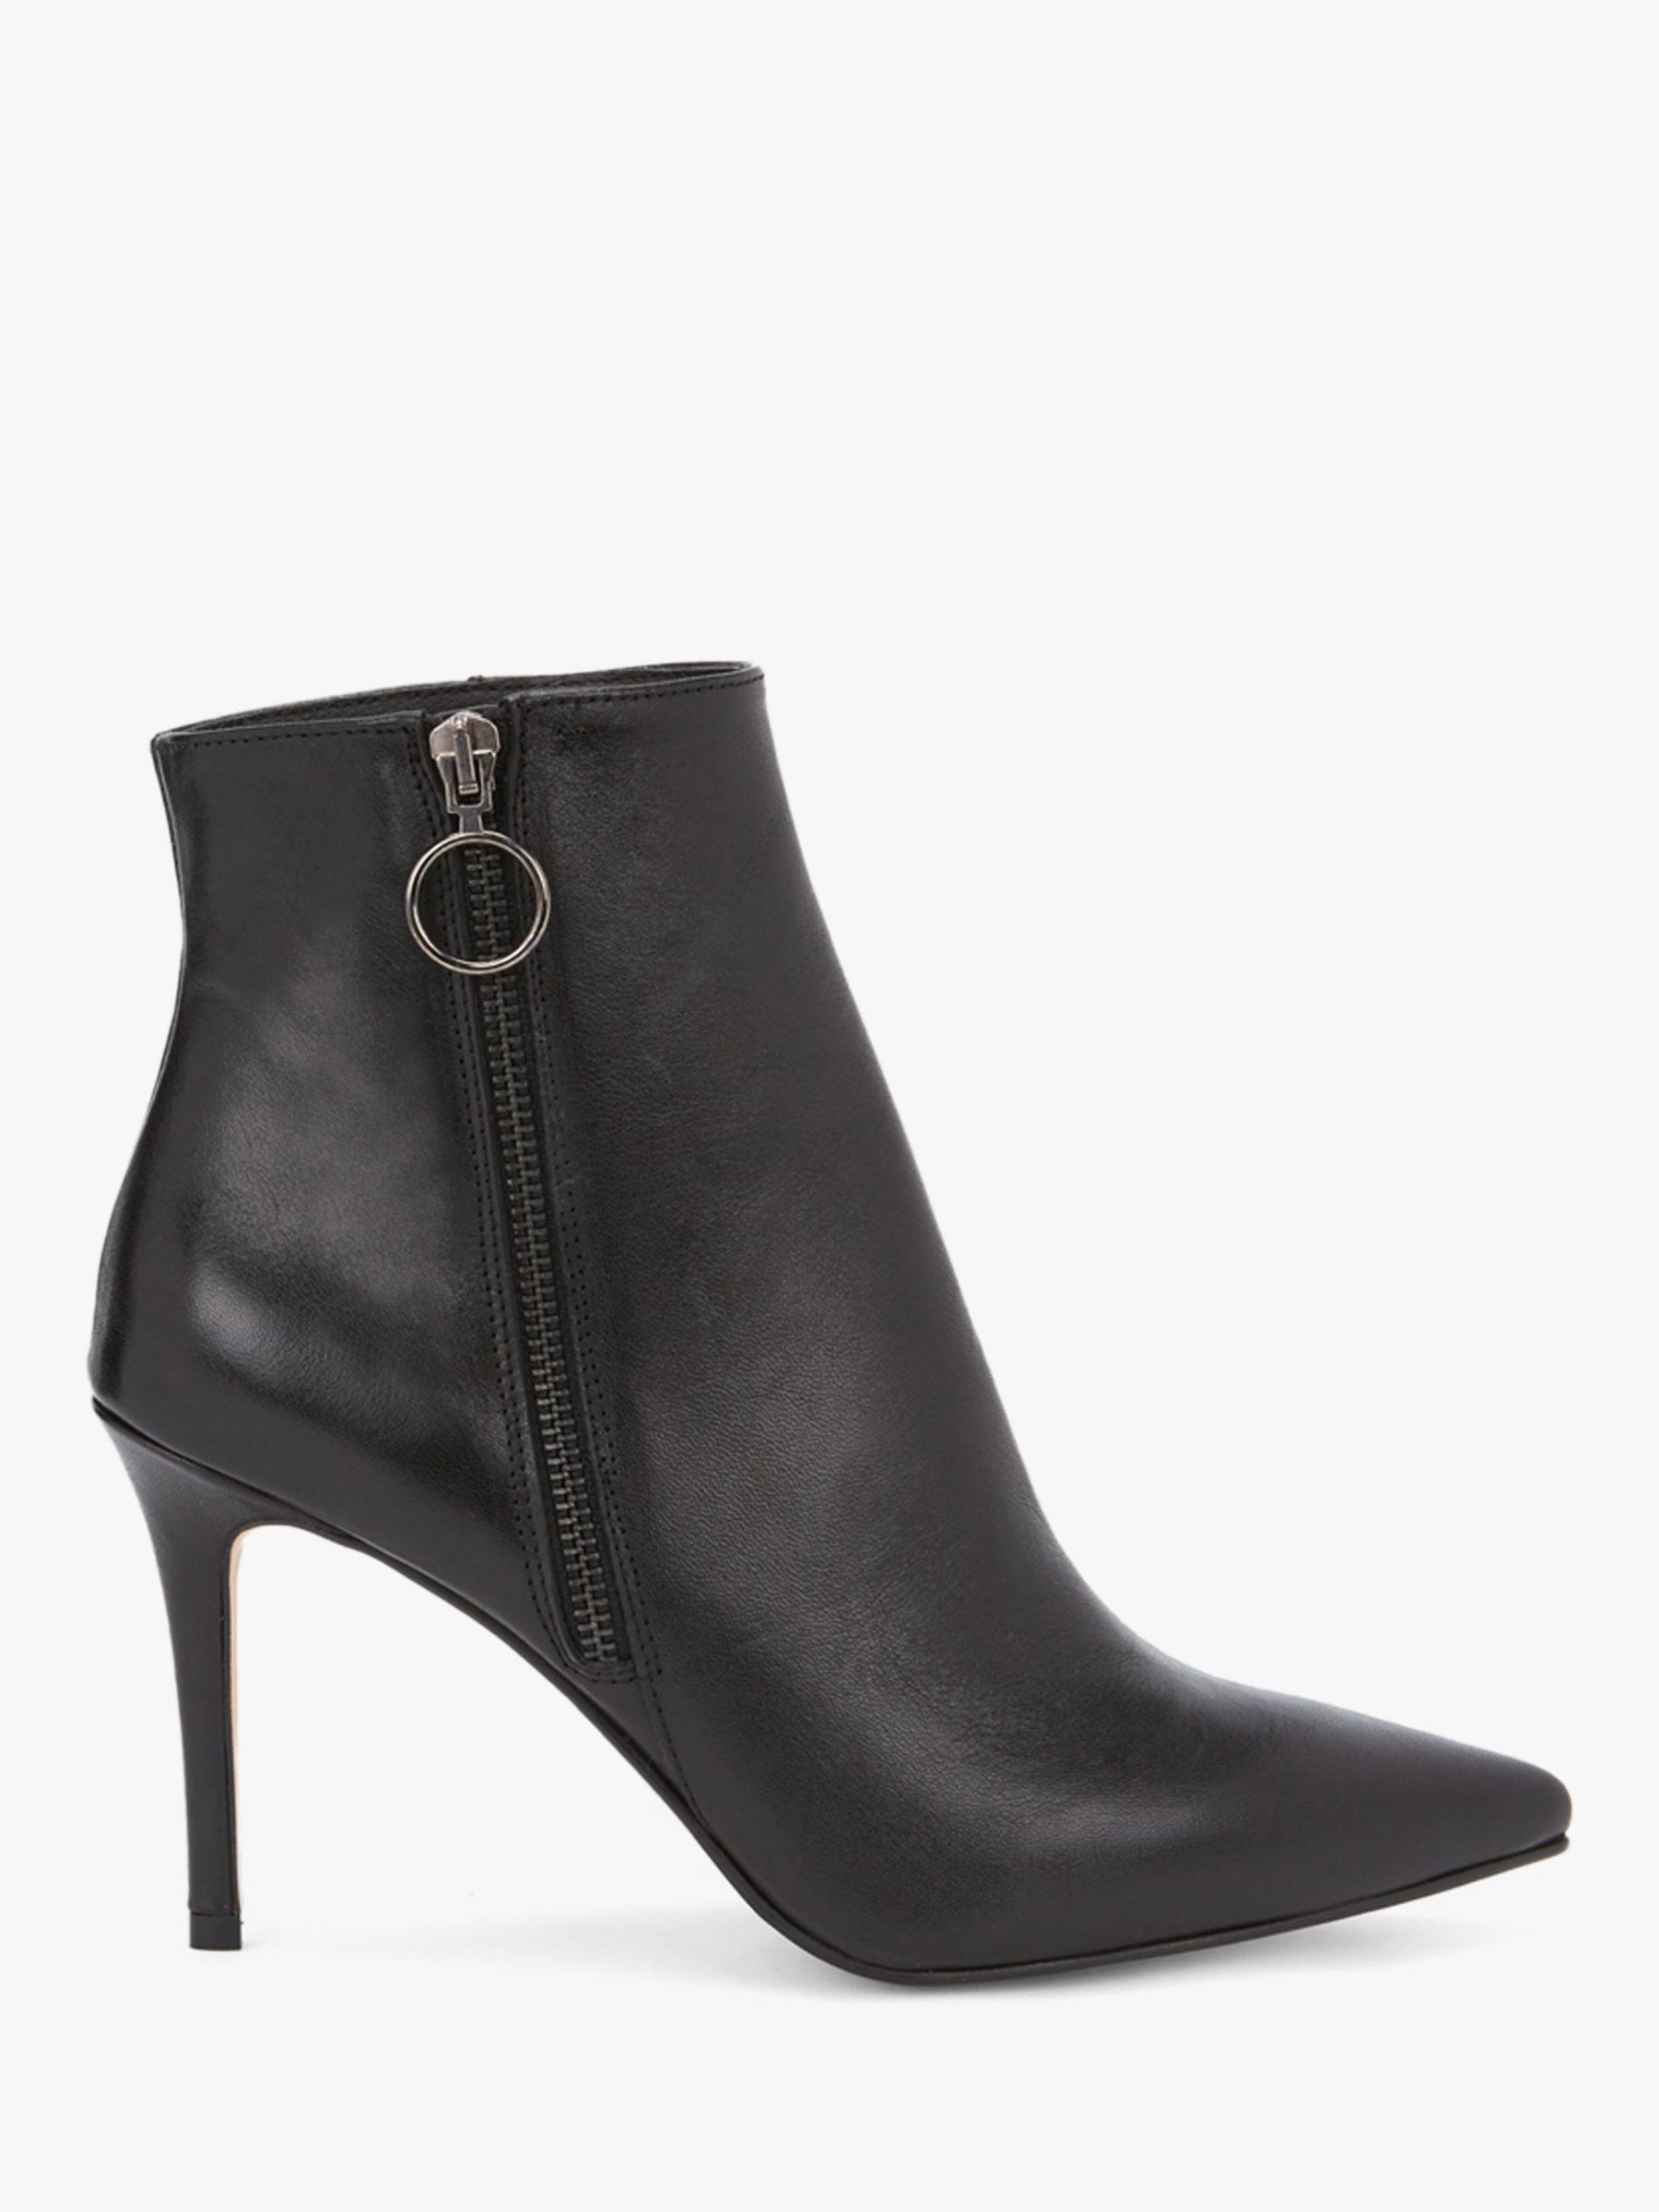 Mint Velvet Sally Leather Pointed Toe Ankle Boots, Black